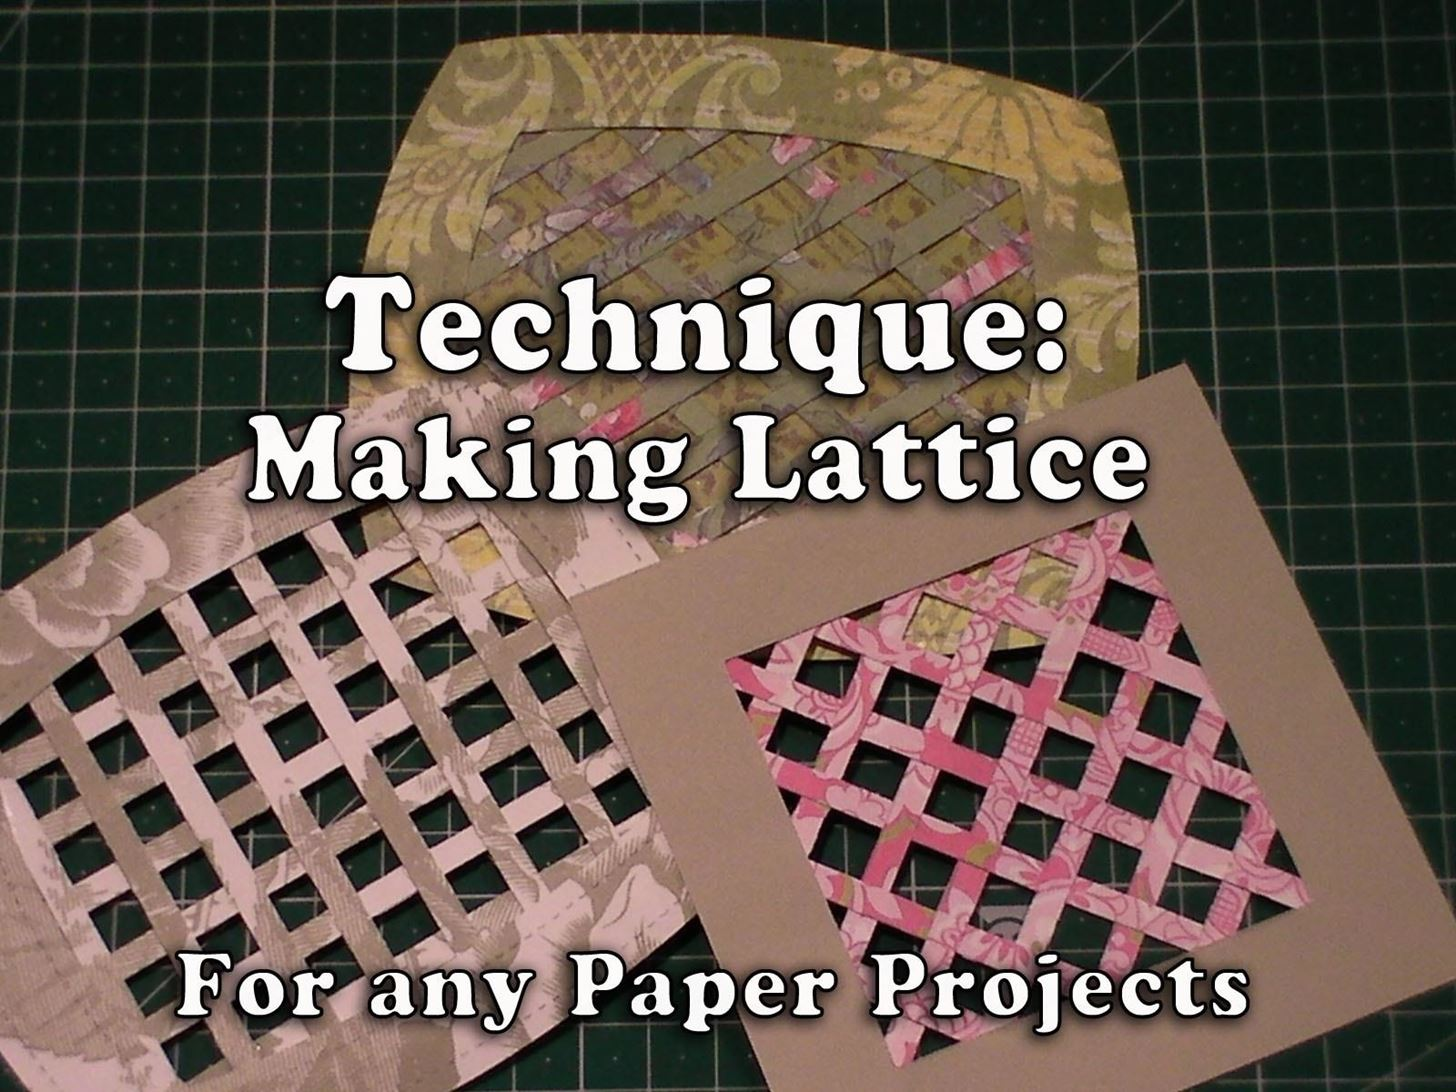 How to Make Your Own Lattice for Your Crafts